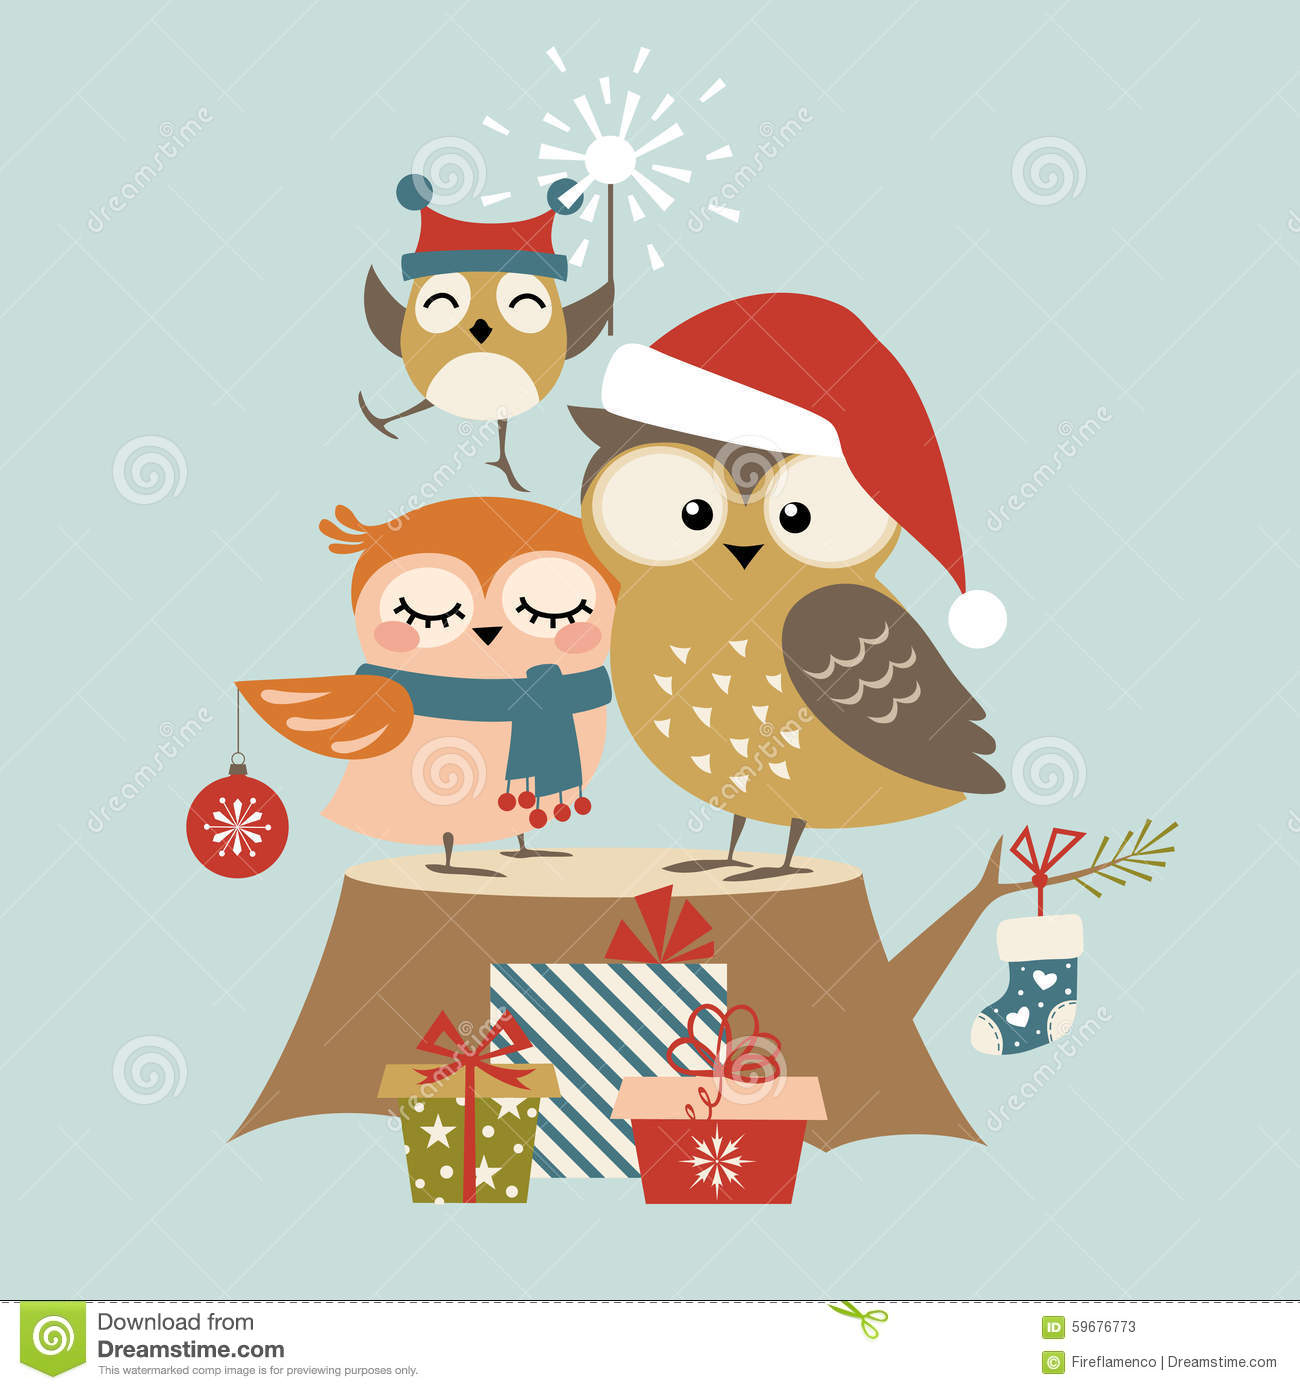 Christmas Owl Family Stock Vector - Image: 59676773